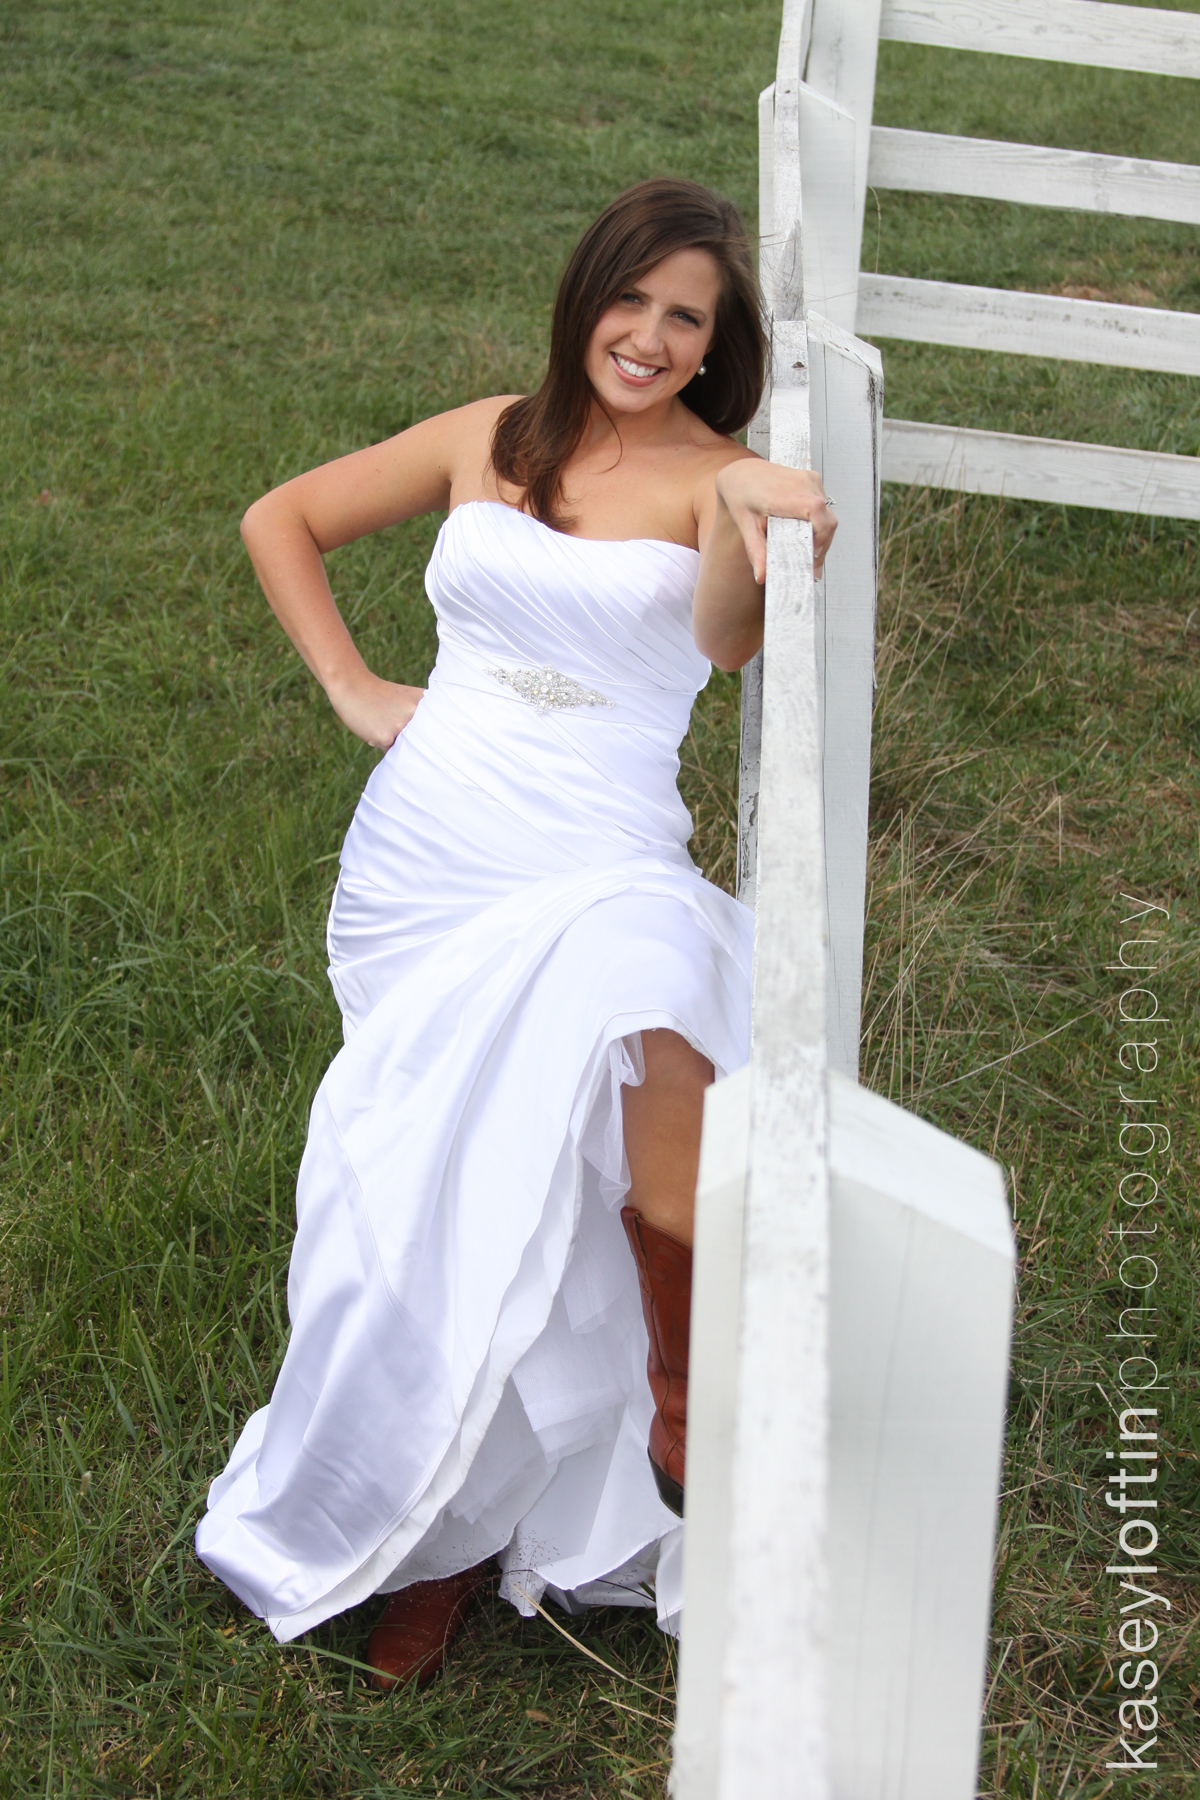 polkville personals Personal ads for polkville, ms are a great way to find a life partner, movie date, or a quick hookup personals are for people local to polkville, ms and are for ages 18+ of.